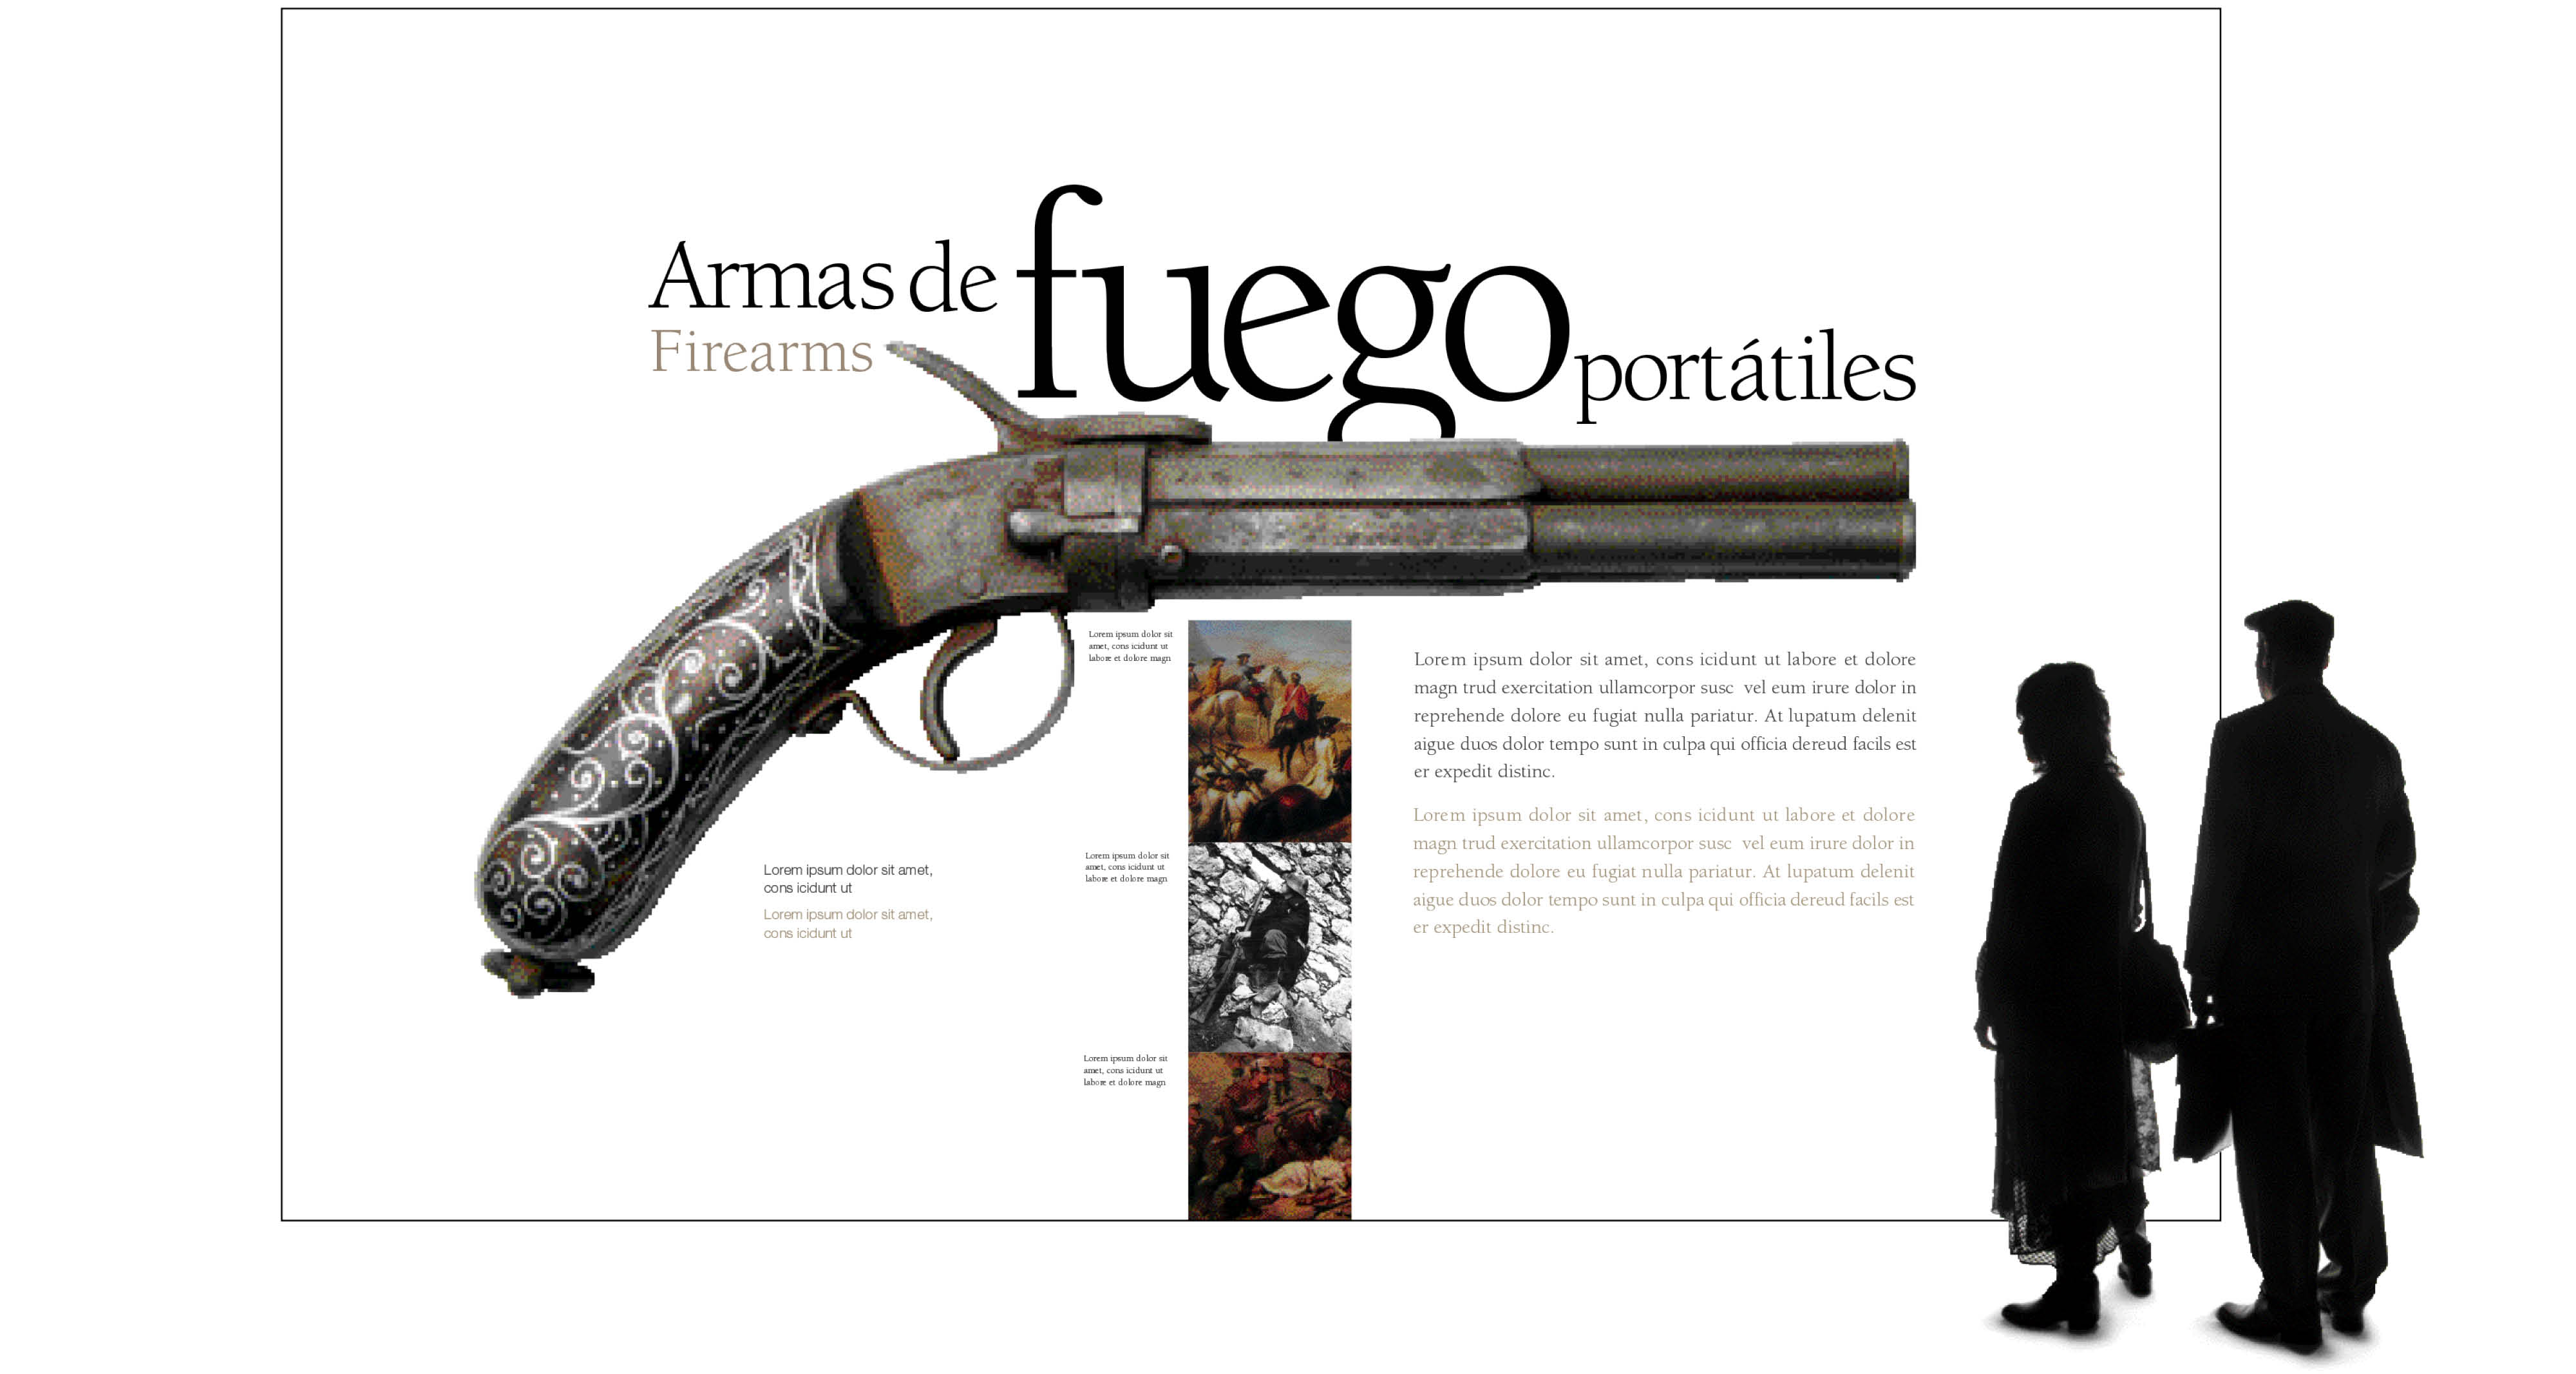 Museo ejercito5